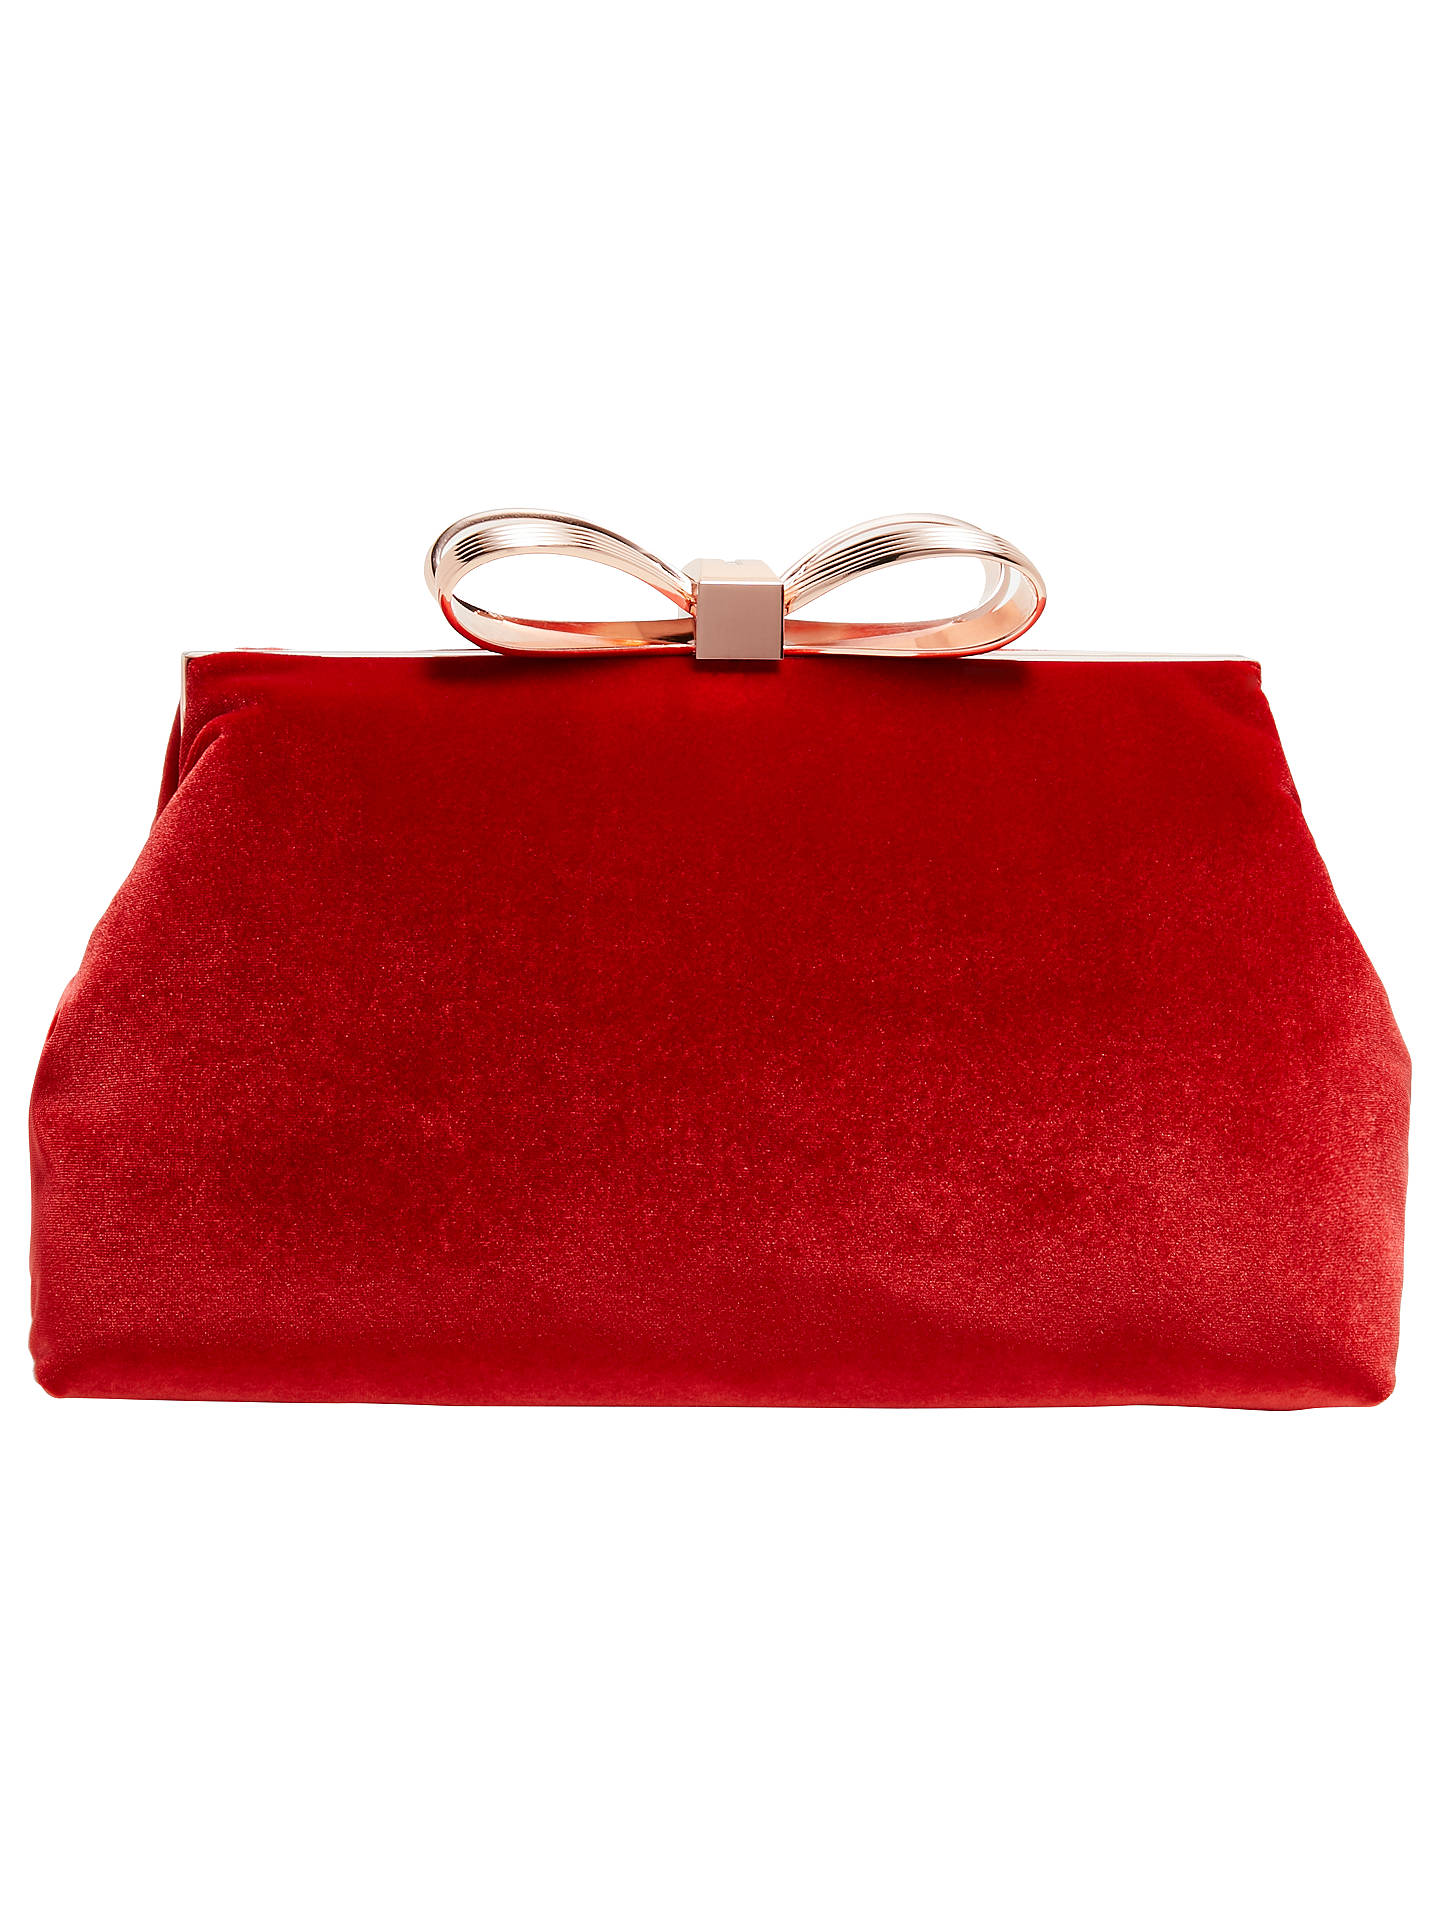 1778f3dd83 Buy Ted Baker Cena Bow Evening Clutch Bag, Bright Red Online at  johnlewis.com ...